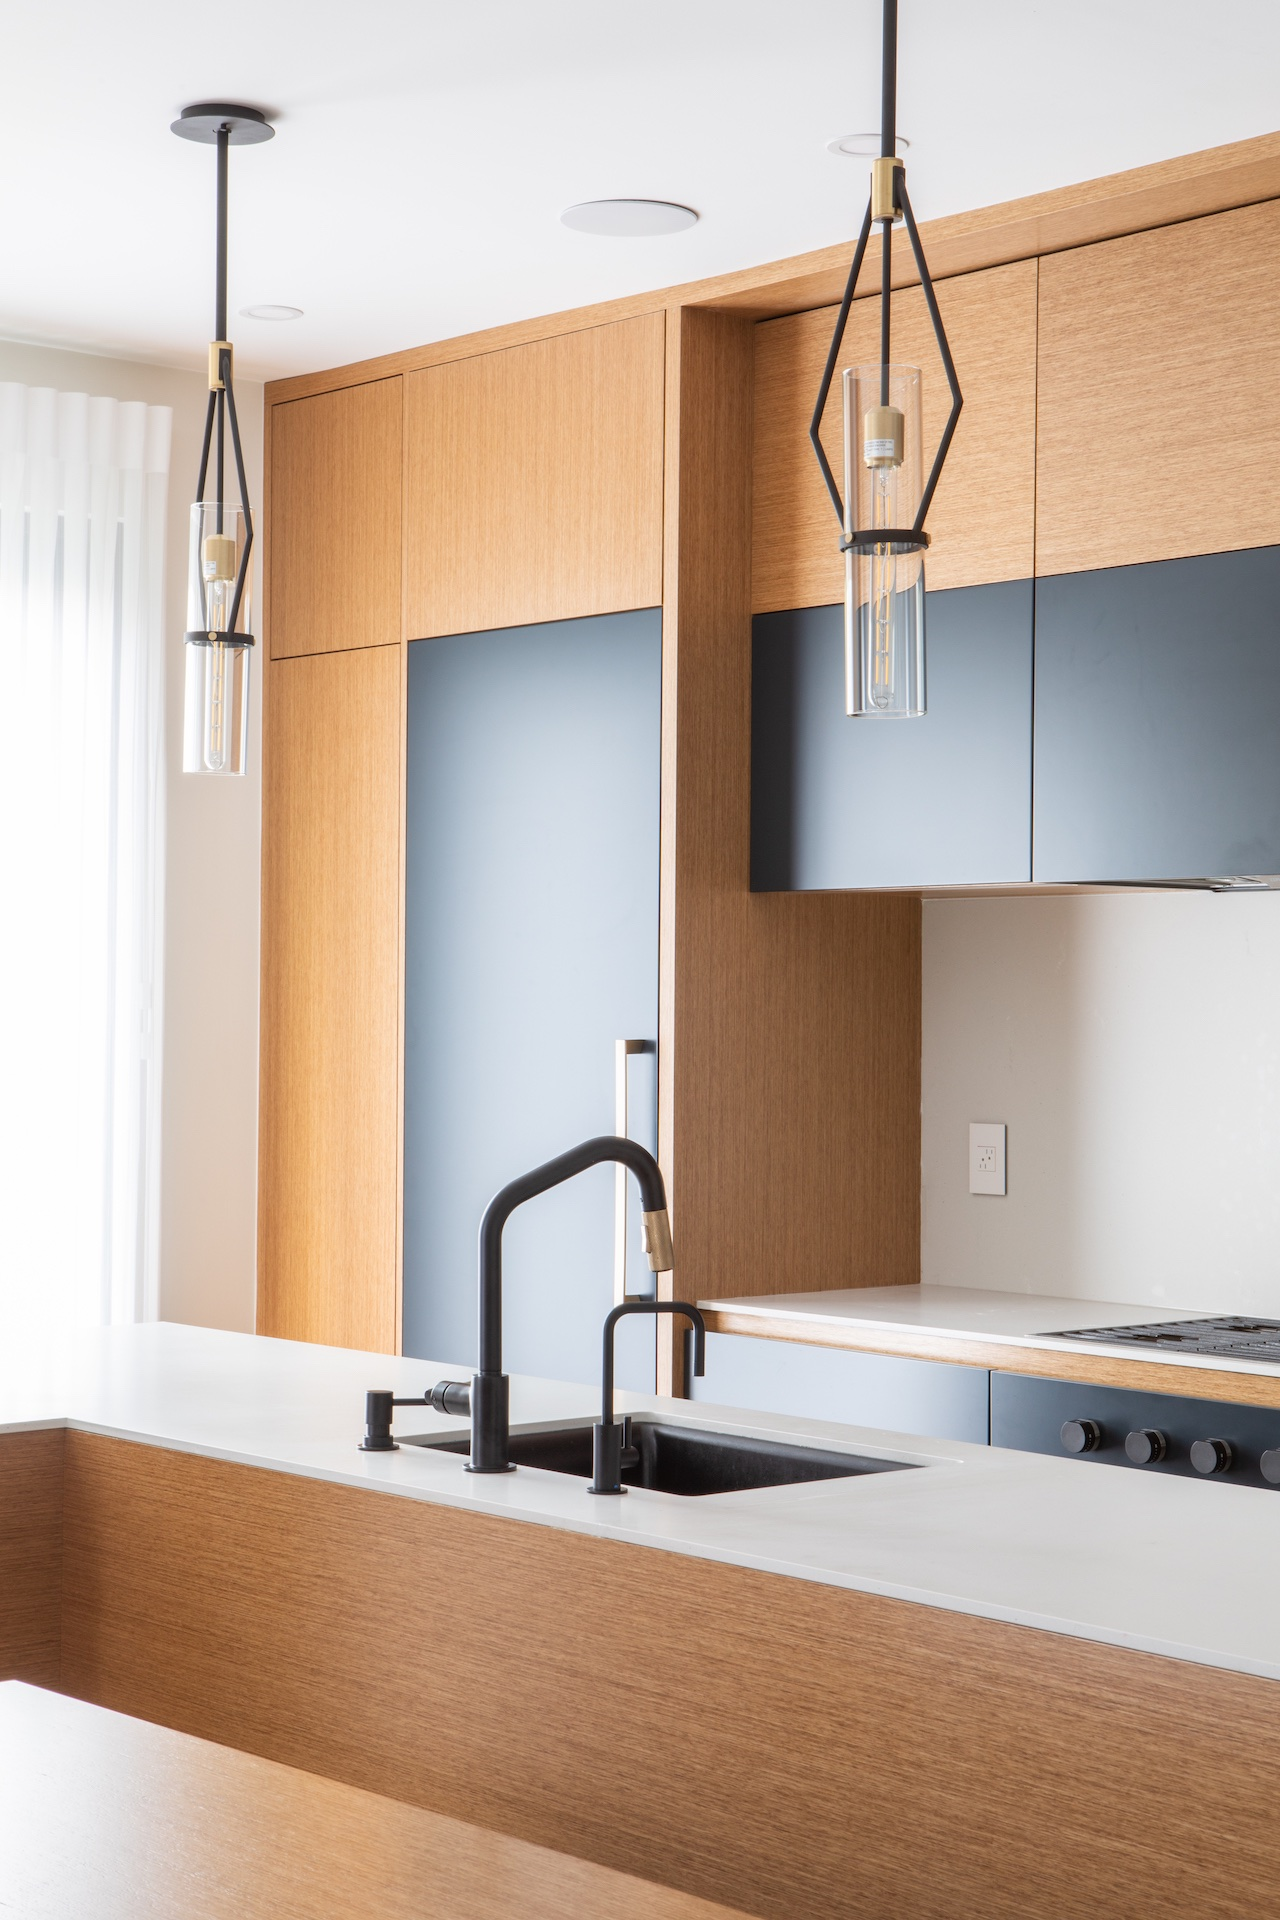 Natural wood and blue contemporary kitchen with black sink